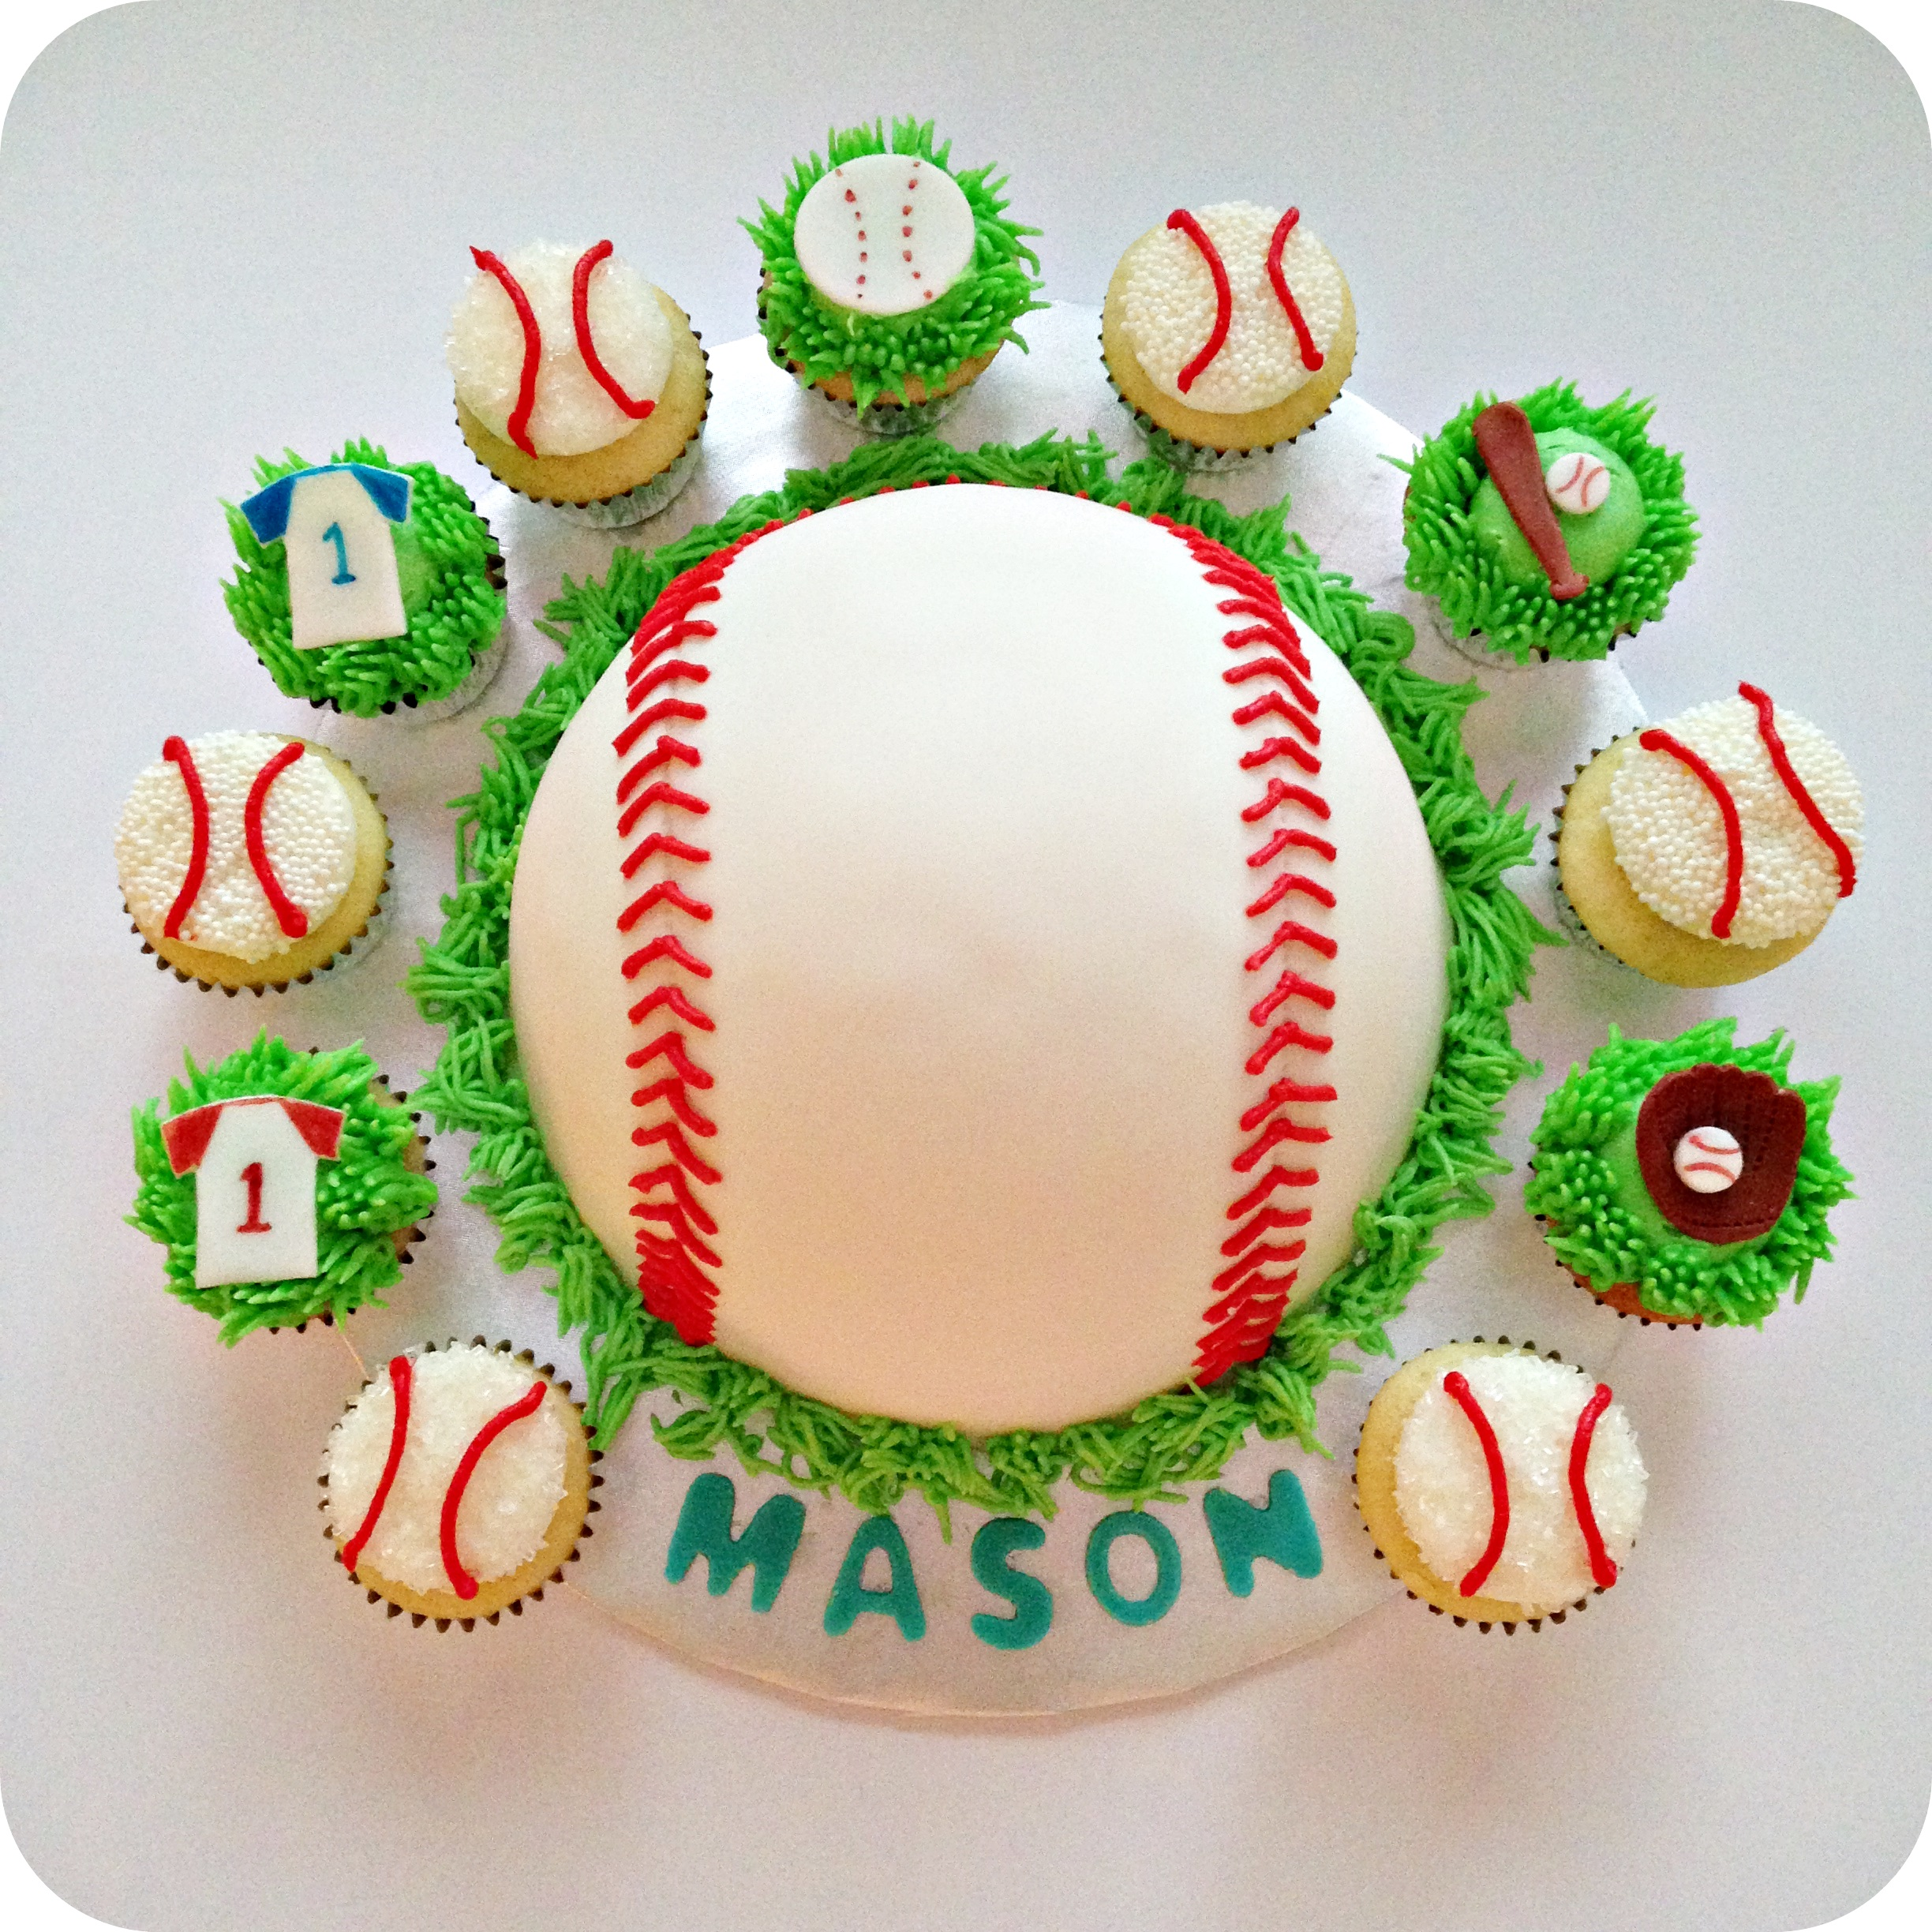 Baseball Themed Cakes And Cupcakes